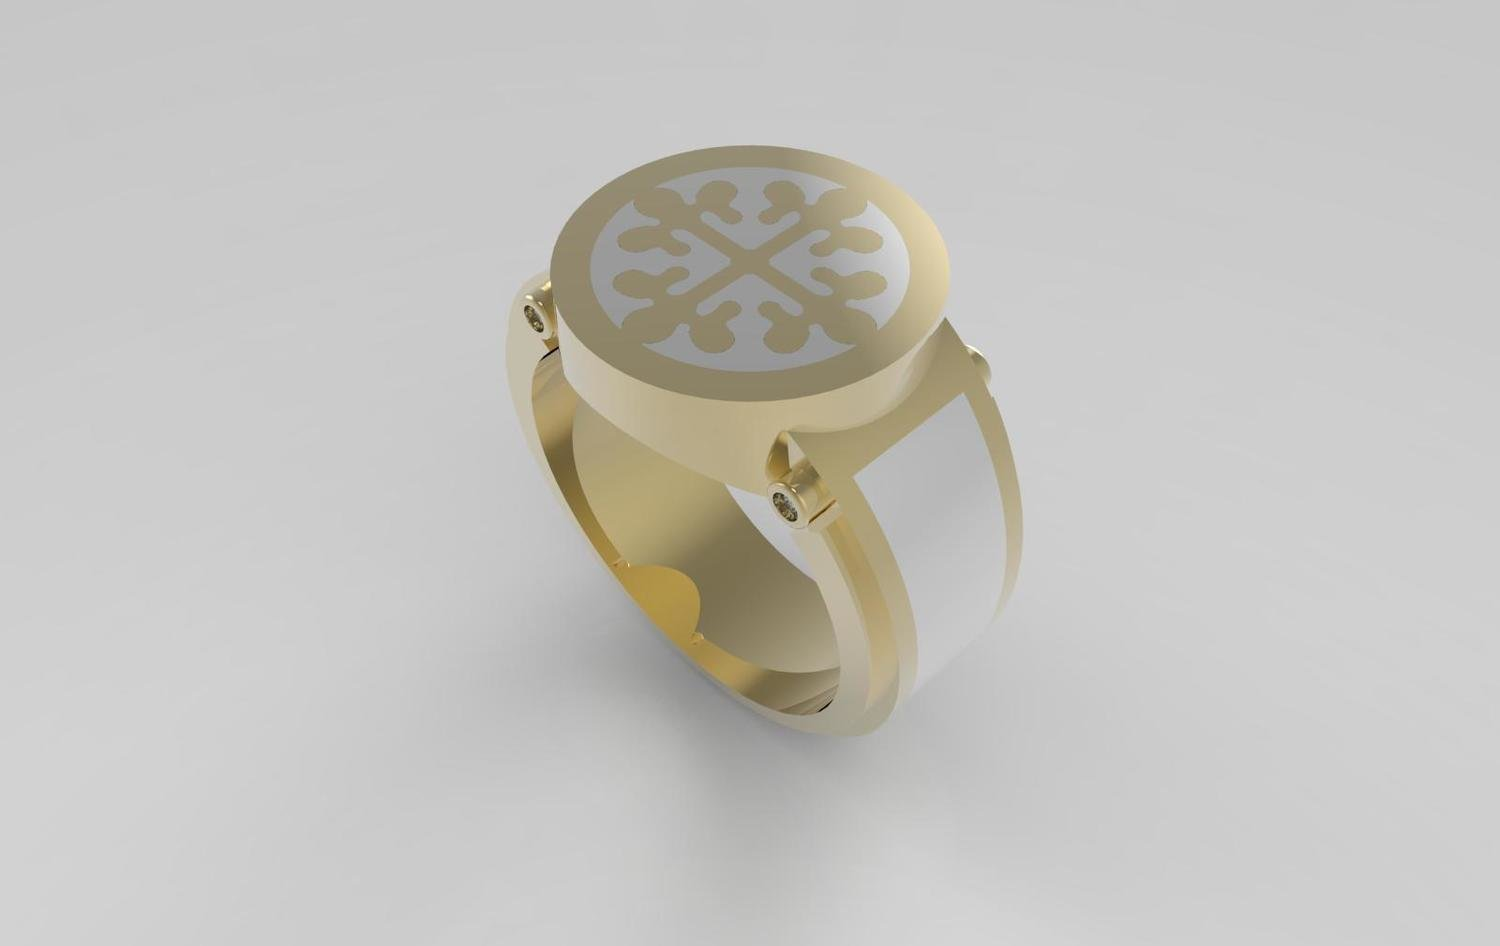 3D CAD Model of Men's  Diamond Signet Ring